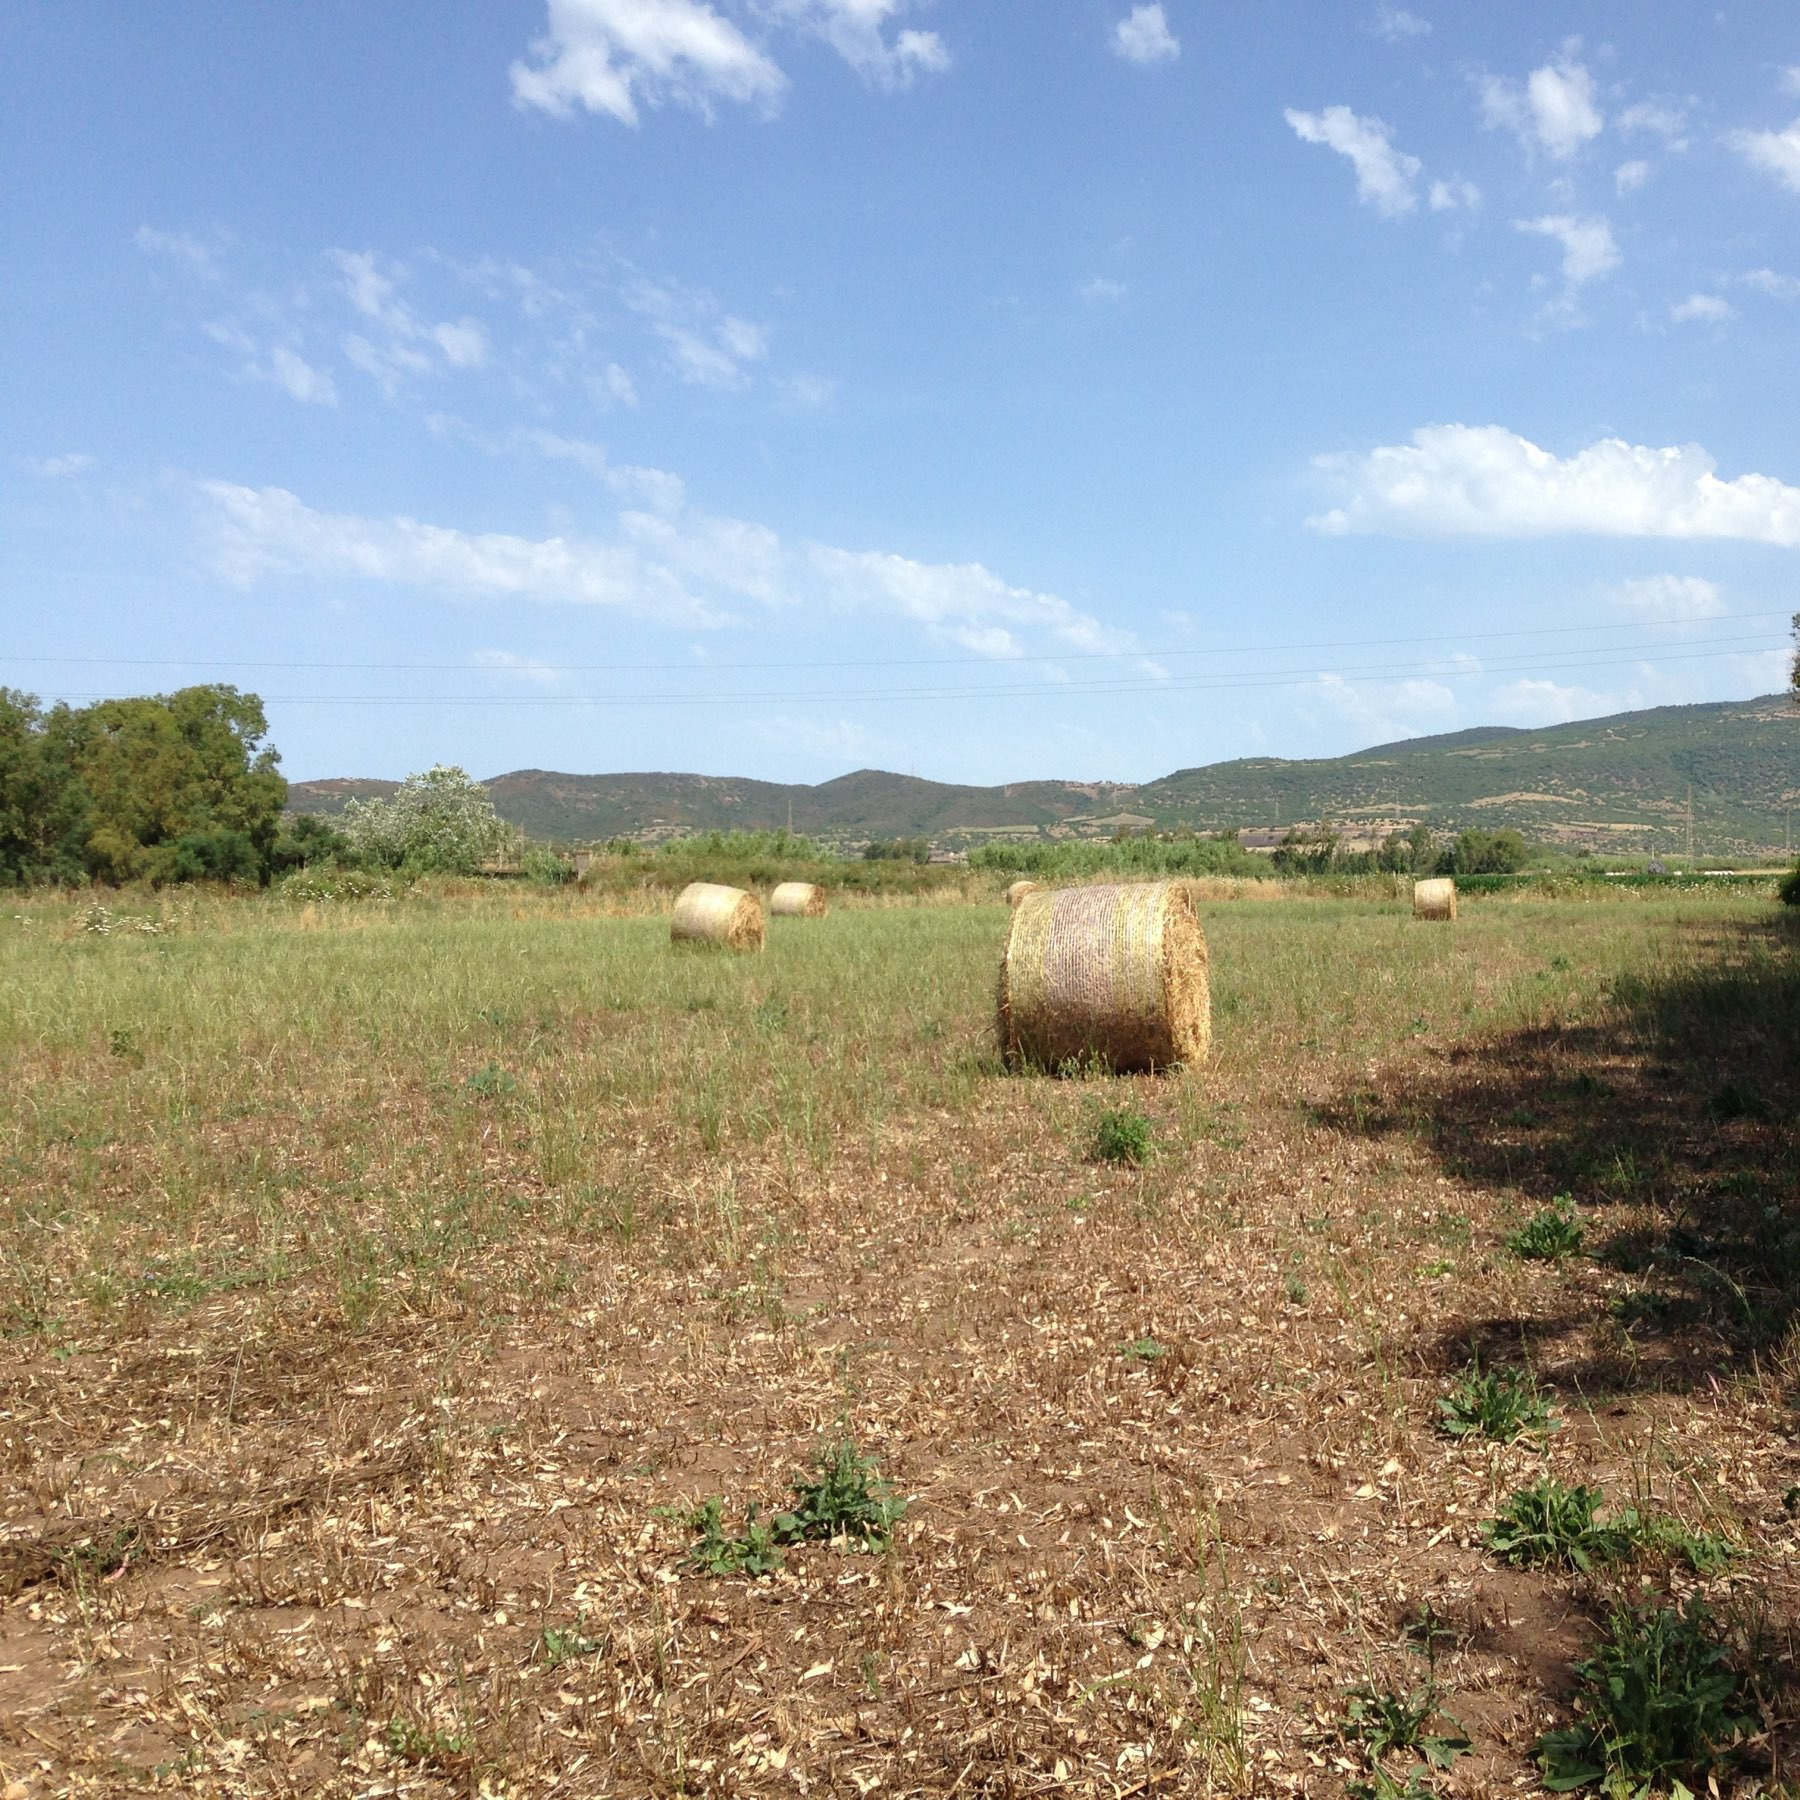 field of baled hay